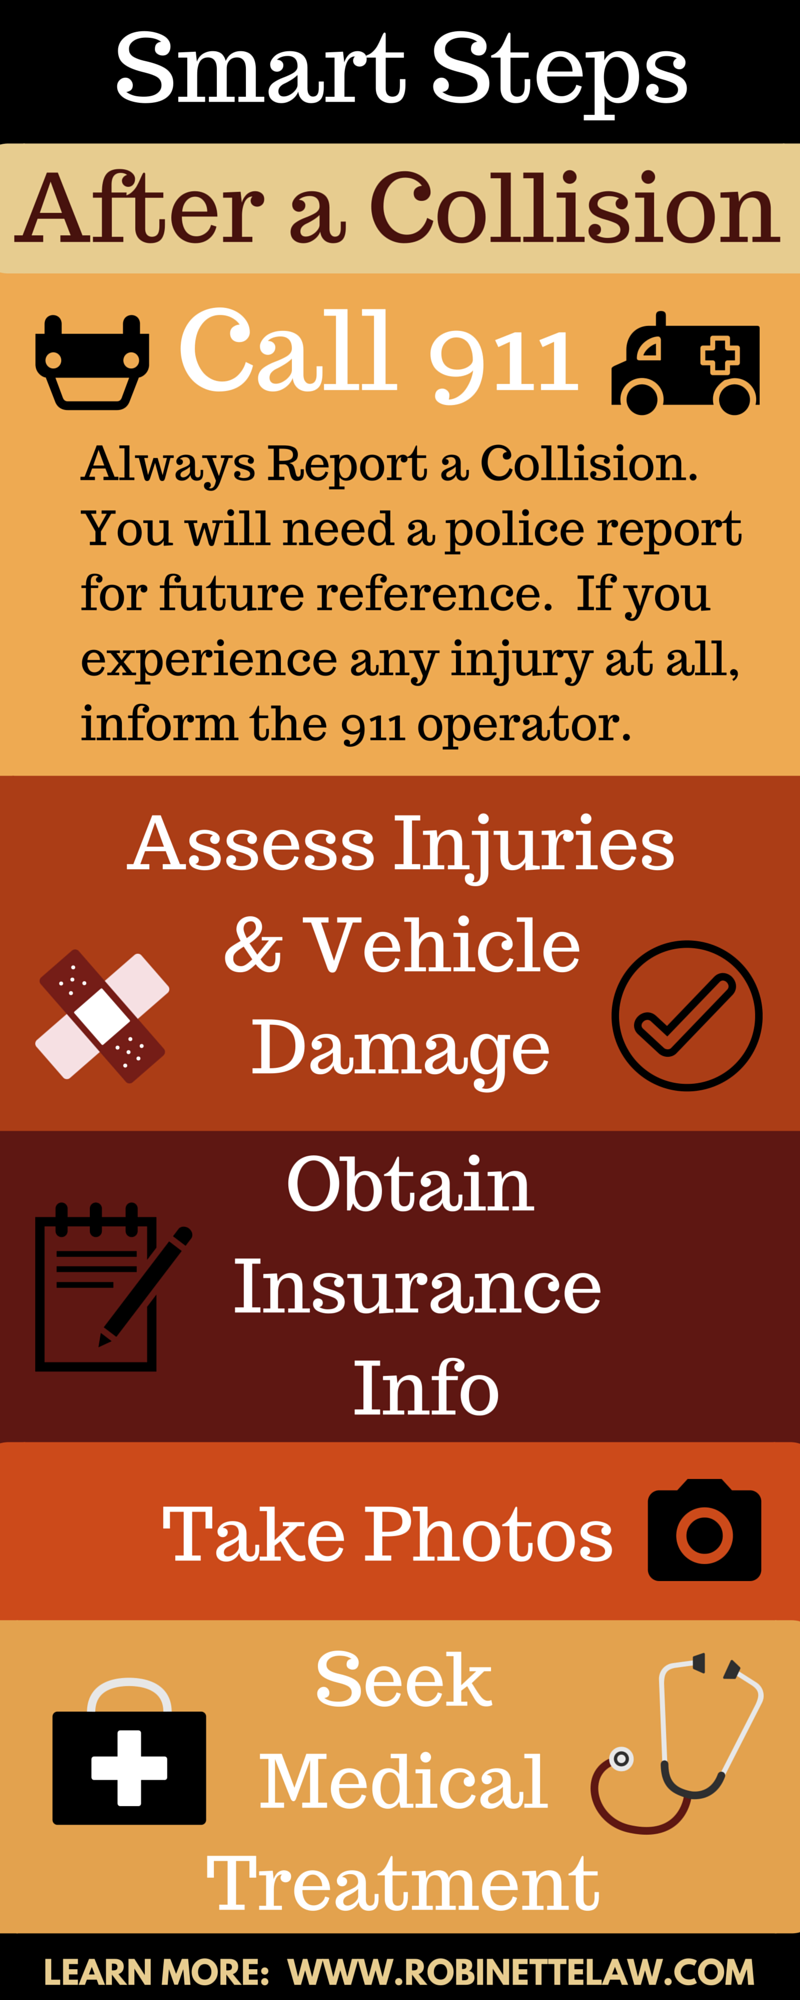 Injured In A Car Accident In West Virginia? Know Your Legal Rights